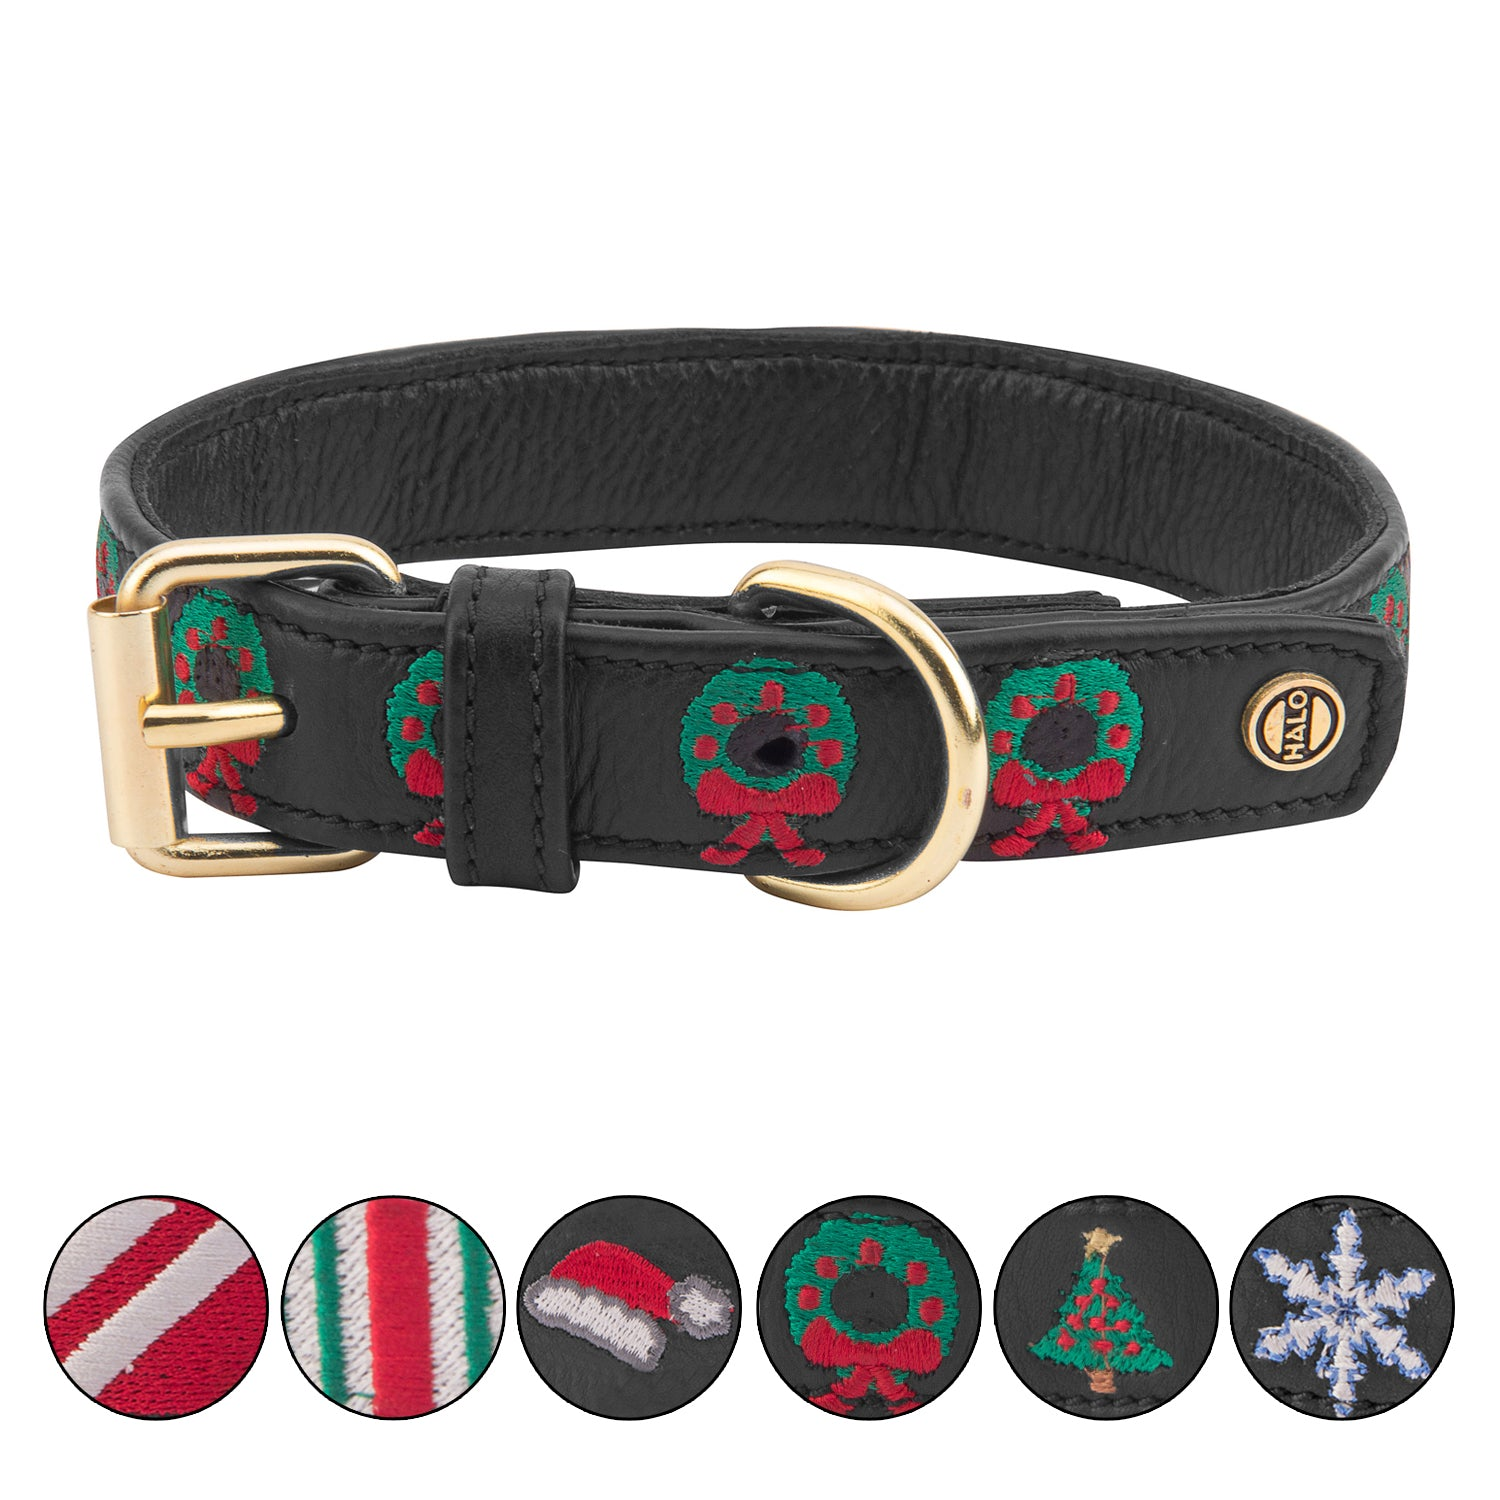 Halo Dog Collar - Leather with Christmas Wreath Embroidery_2039